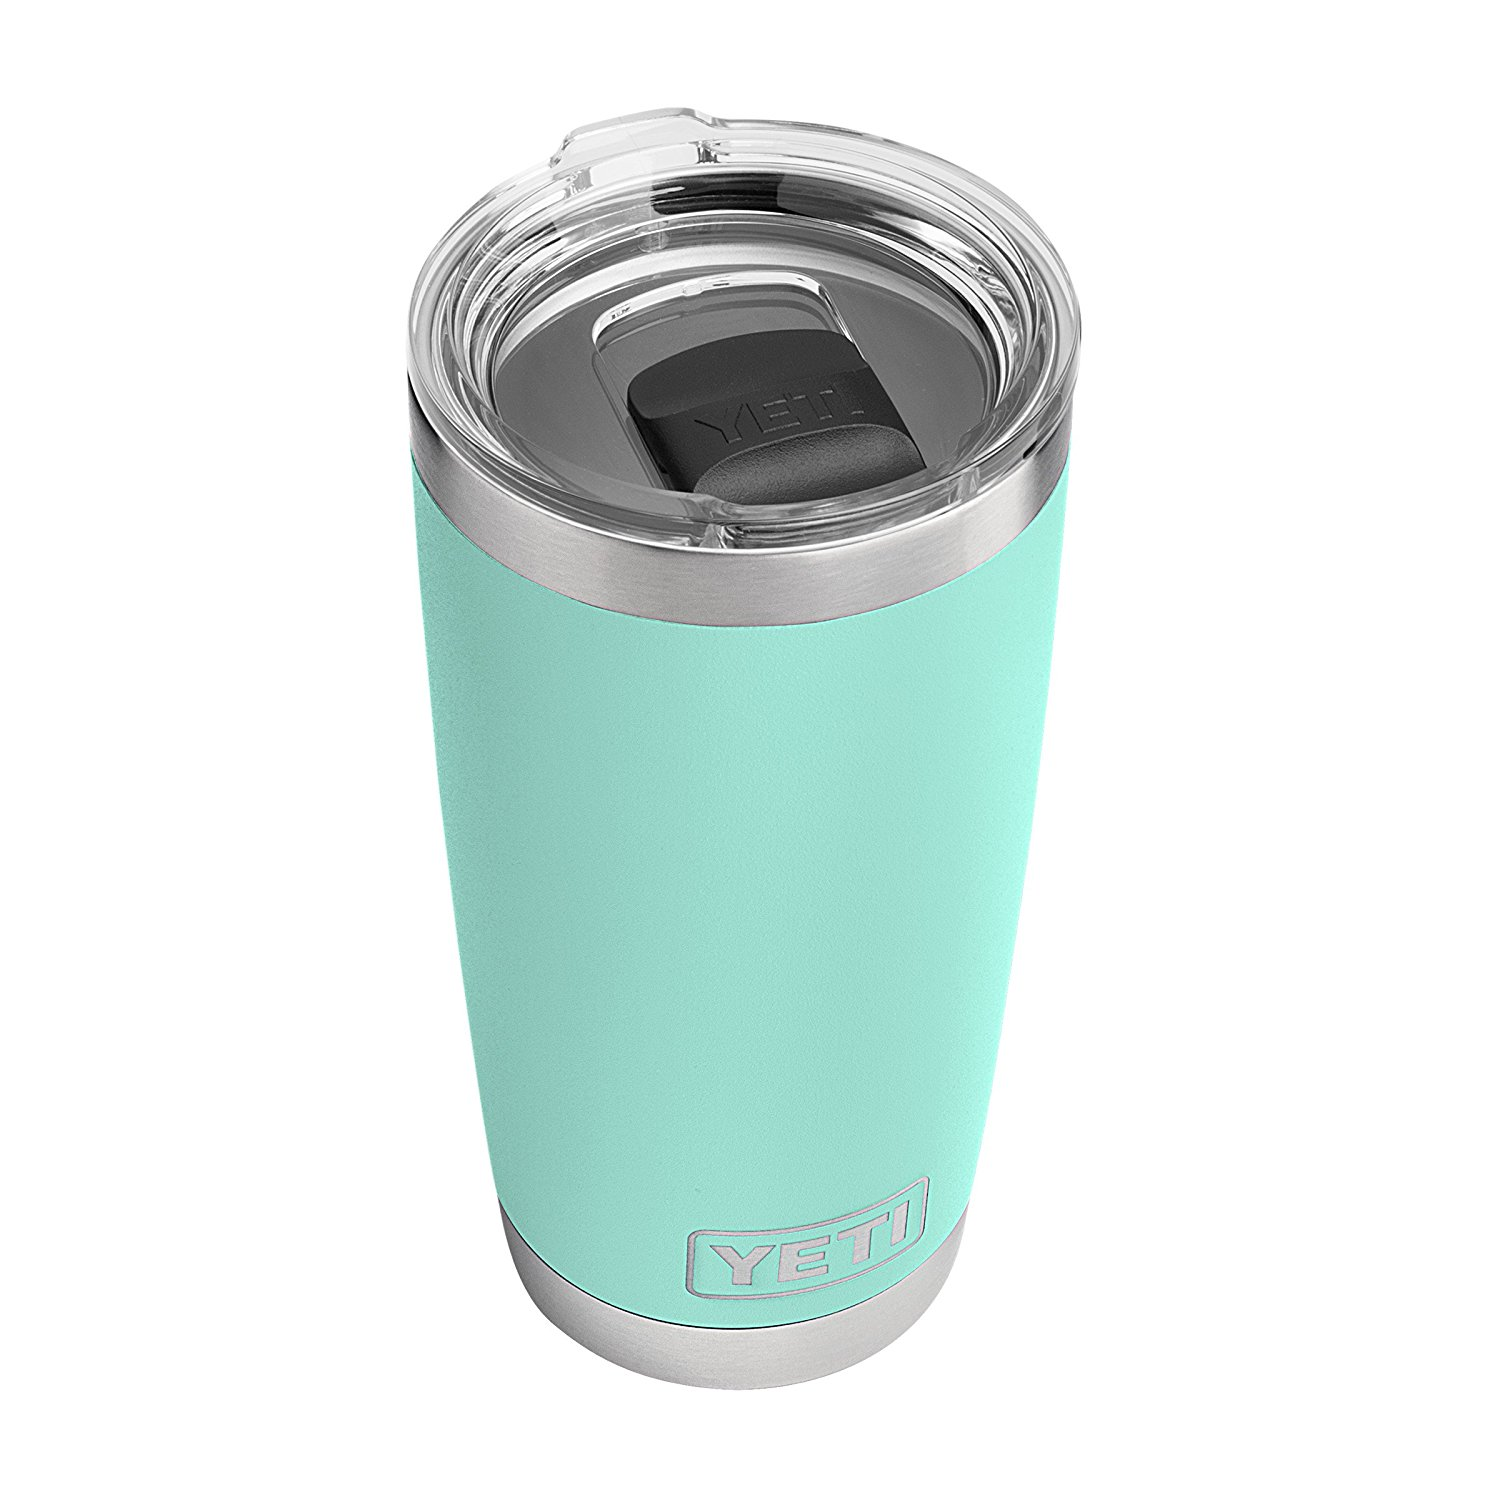 Yeti Rambler Stainless Steel Vacuum Insulated Tumbler With